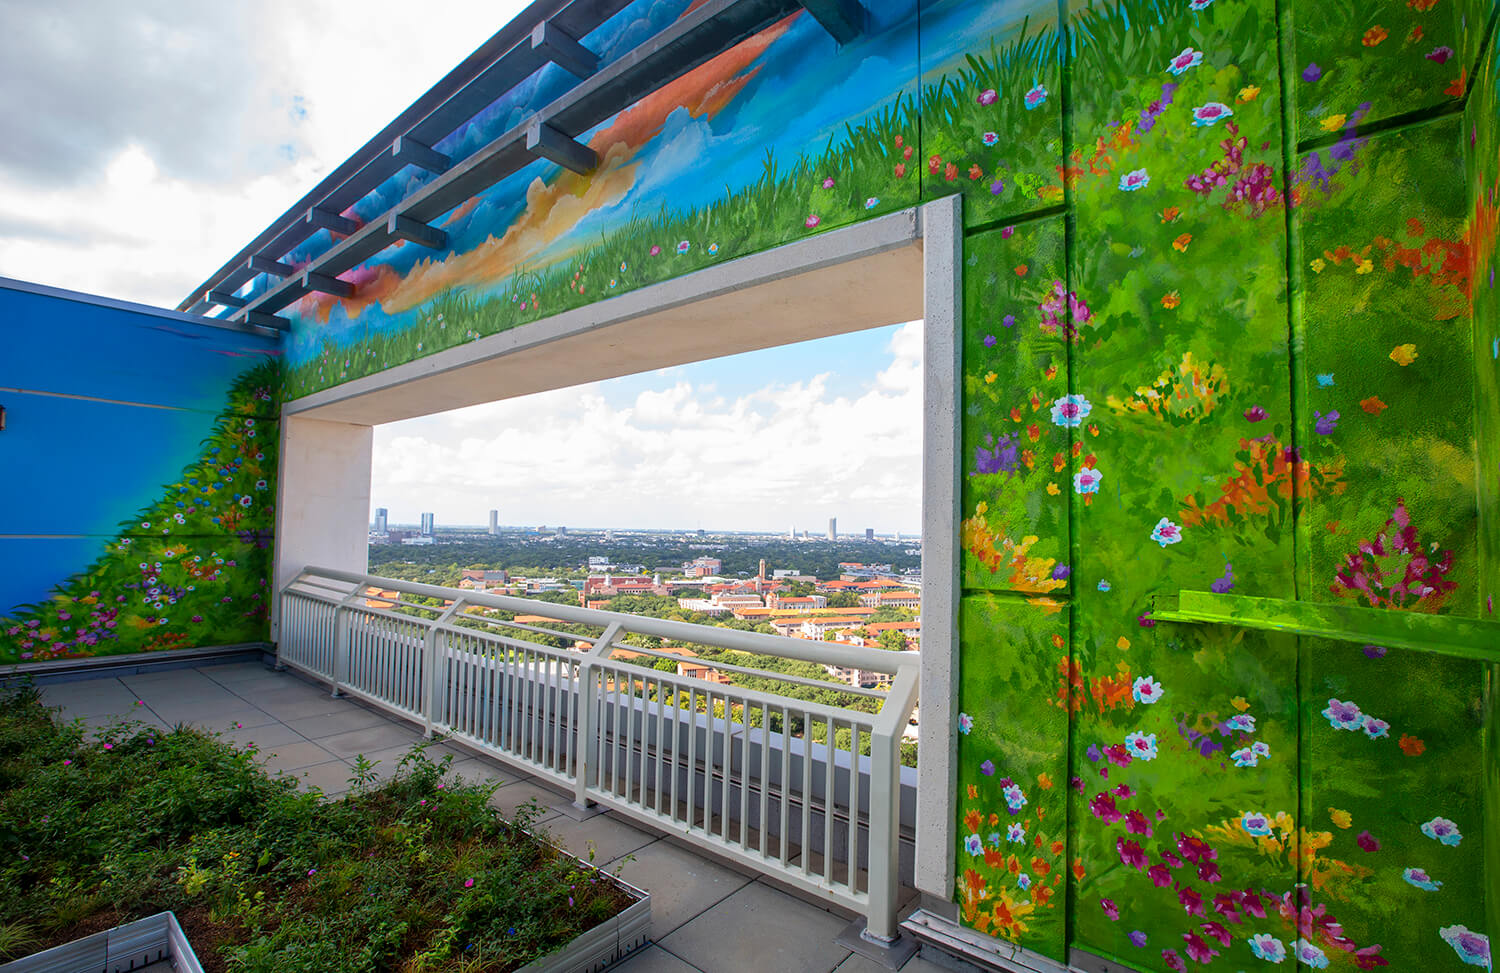 The garden is meant to resemble a peaceful, open meadow to ease patients' spirits.